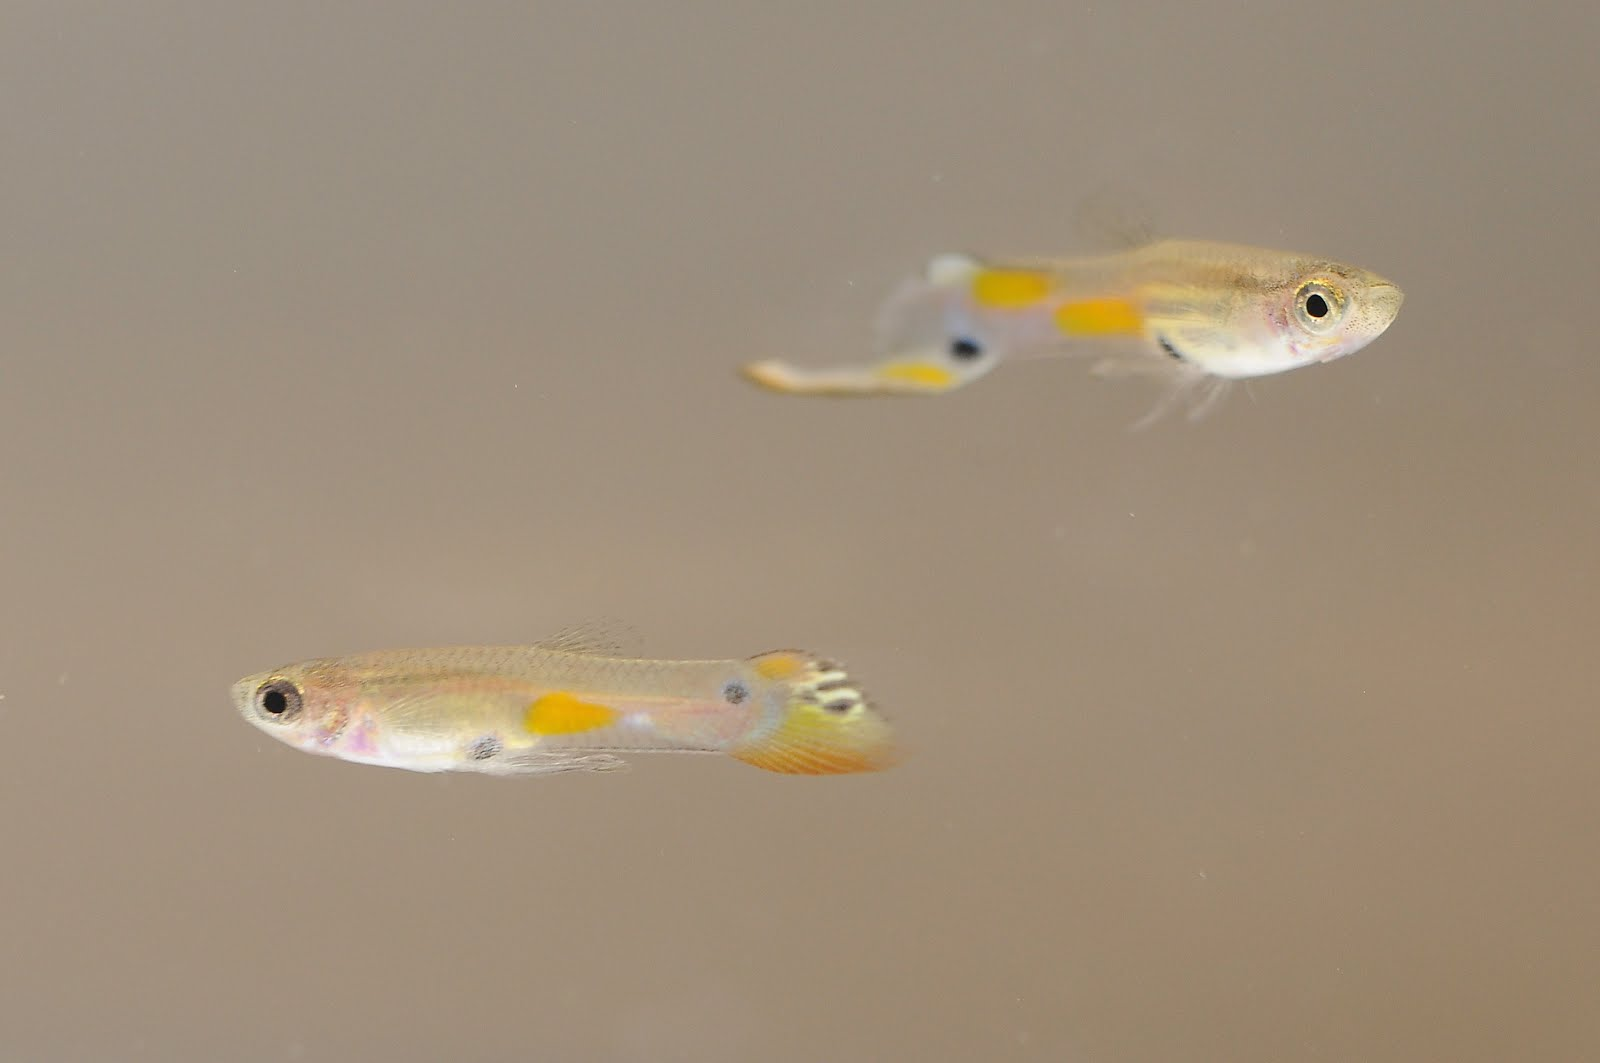 a study of the courtship behaviors of the male guppy In the guppy, poecilia reticulata, a male approaching a female abandons his courtship when a rival male appears next to the focal female however, the effect of the relative quality of the males on this behavioural change is unknown.